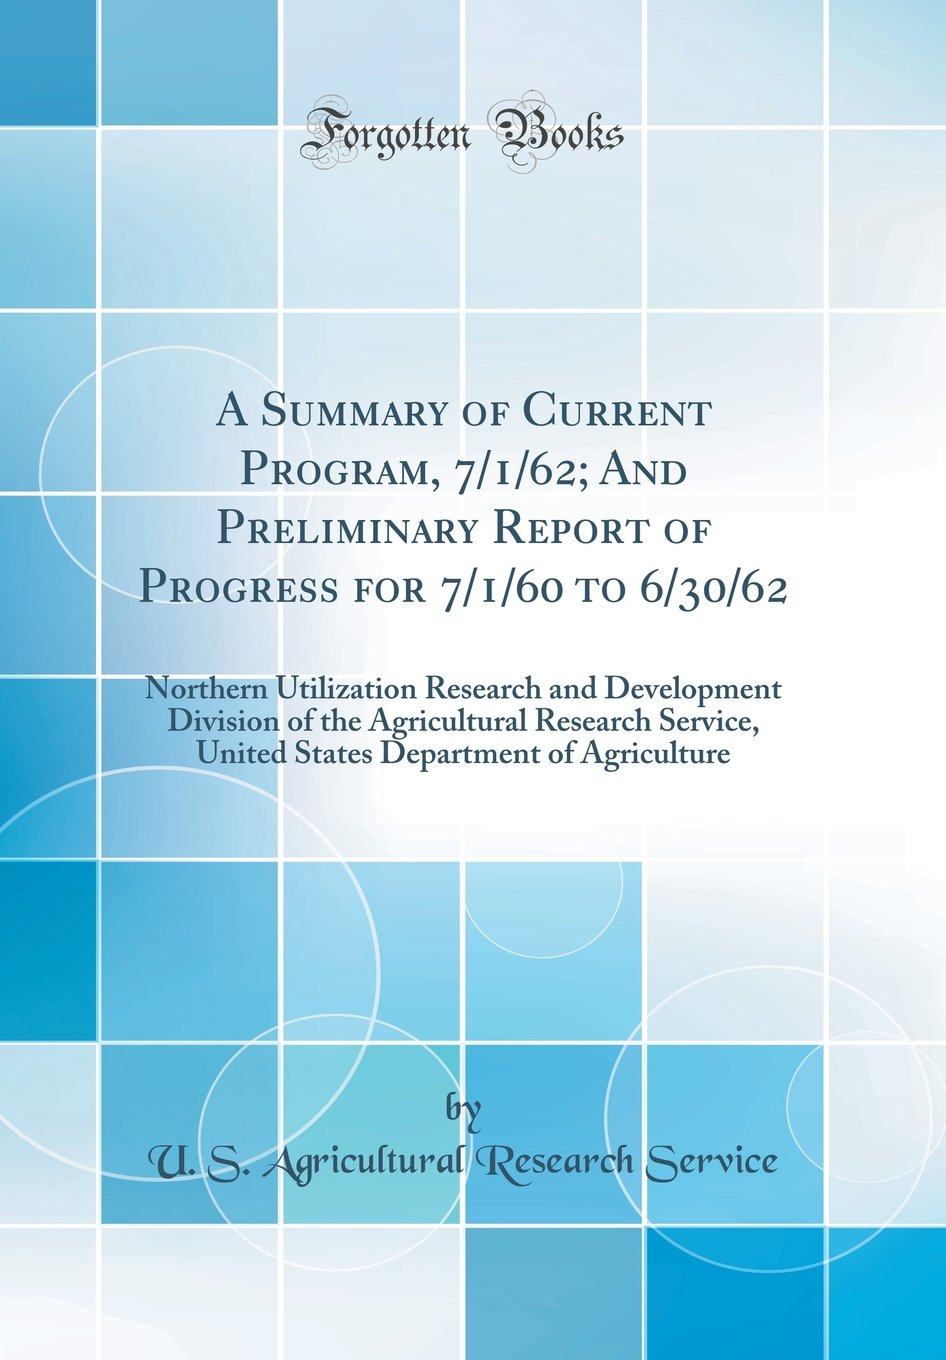 Read Online A Summary of Current Program, 7/1/62; And Preliminary Report of Progress for 7/1/60 to 6/30/62: Northern Utilization Research and Development Division ... Department of Agriculture (Classic Reprint) PDF